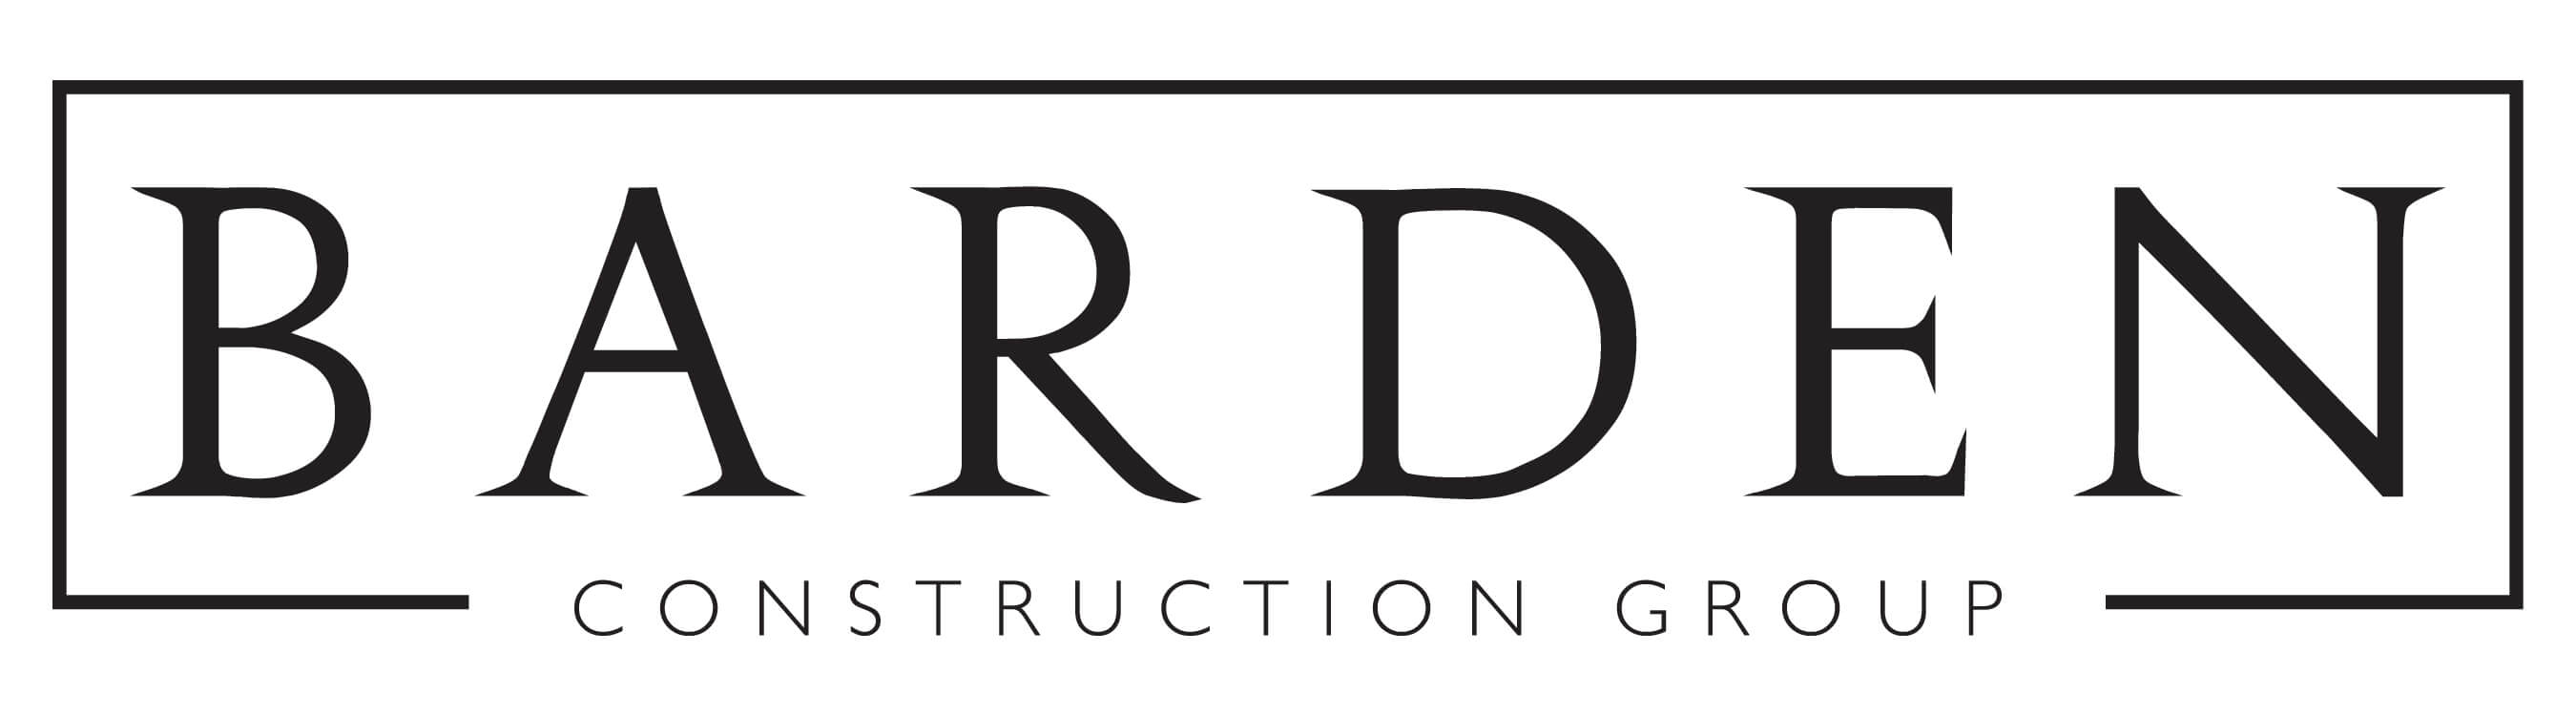 Barden Construction Group